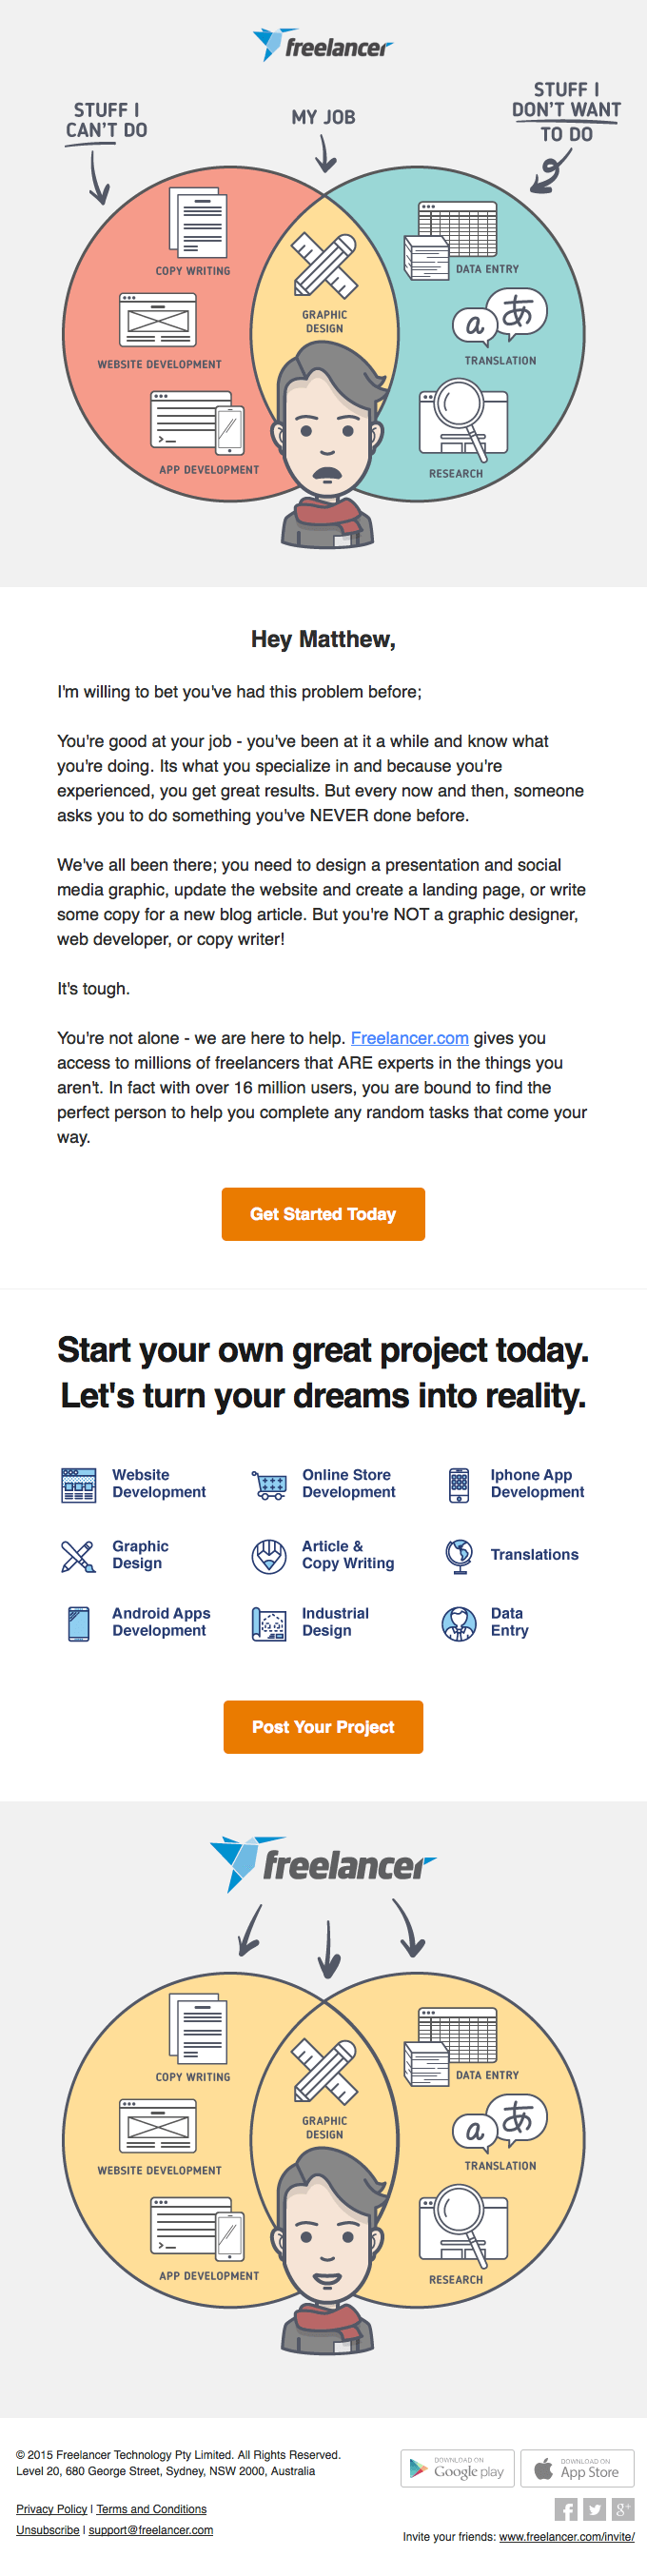 Business email examples-Freelancer